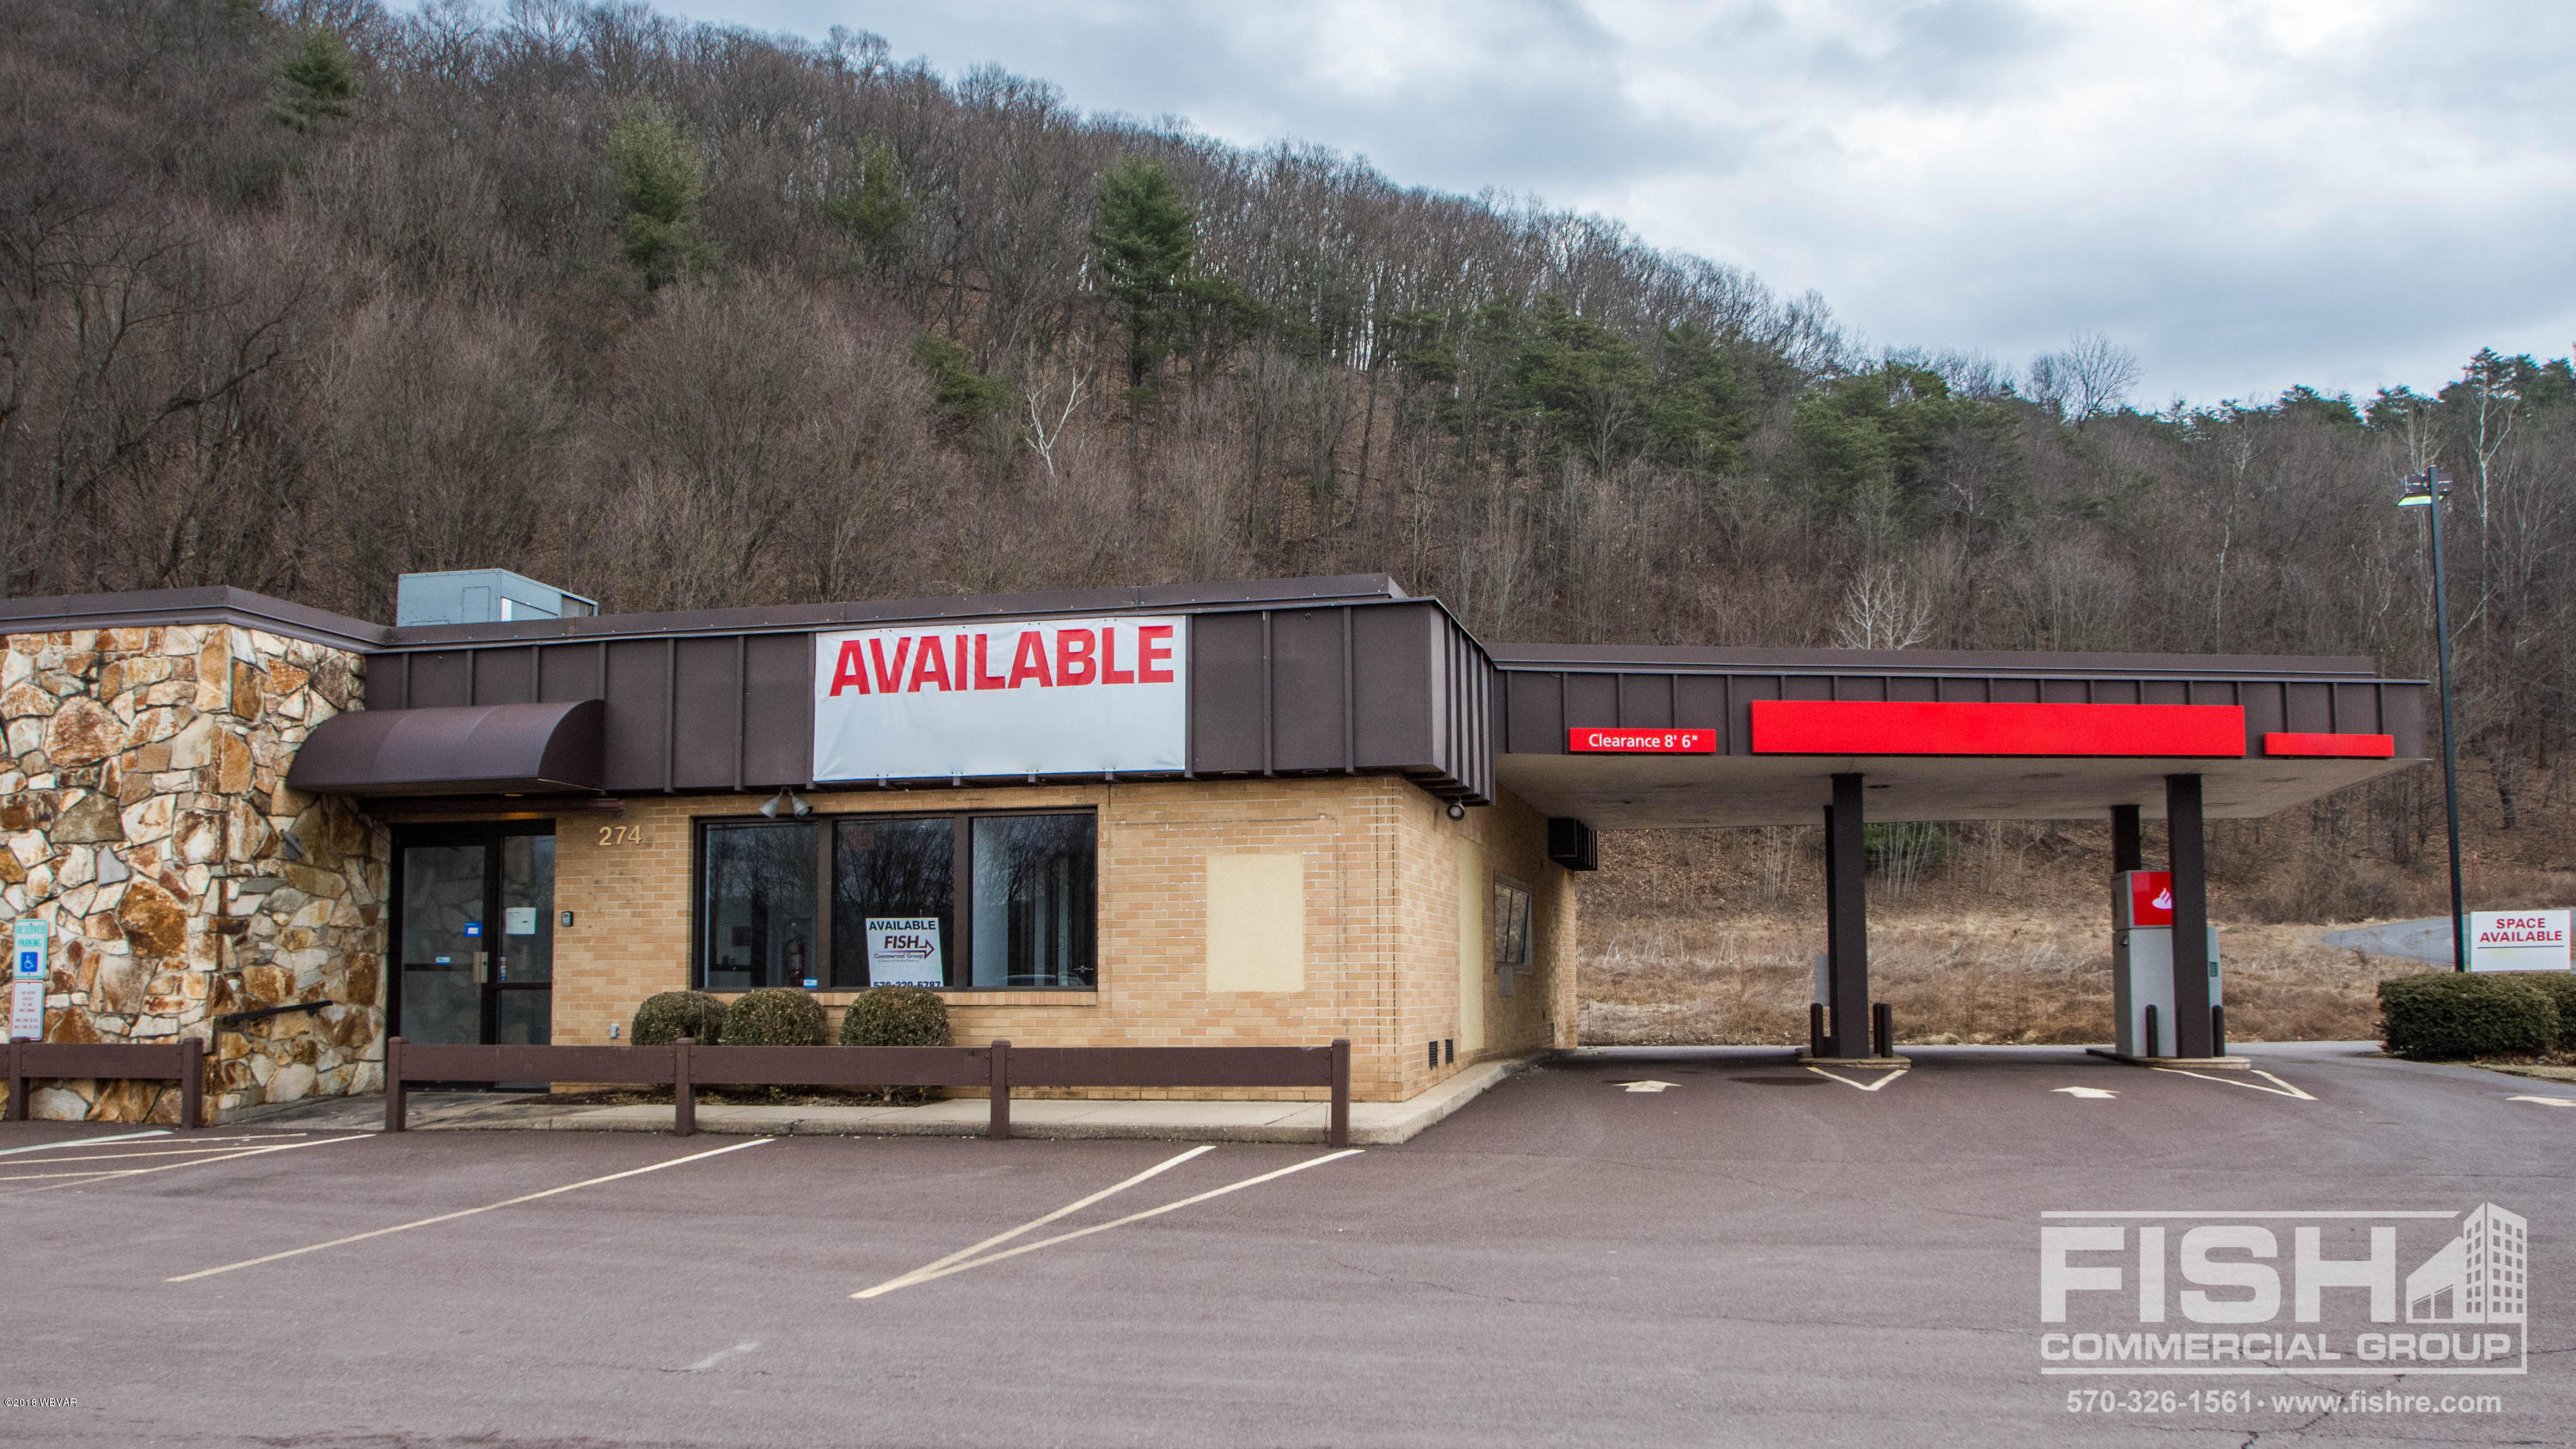 475 ROUTE 87 HIGHWAY,Montoursville,PA 17754,1 BathroomBathrooms,Comm/ind lease,ROUTE 87,WB-83244